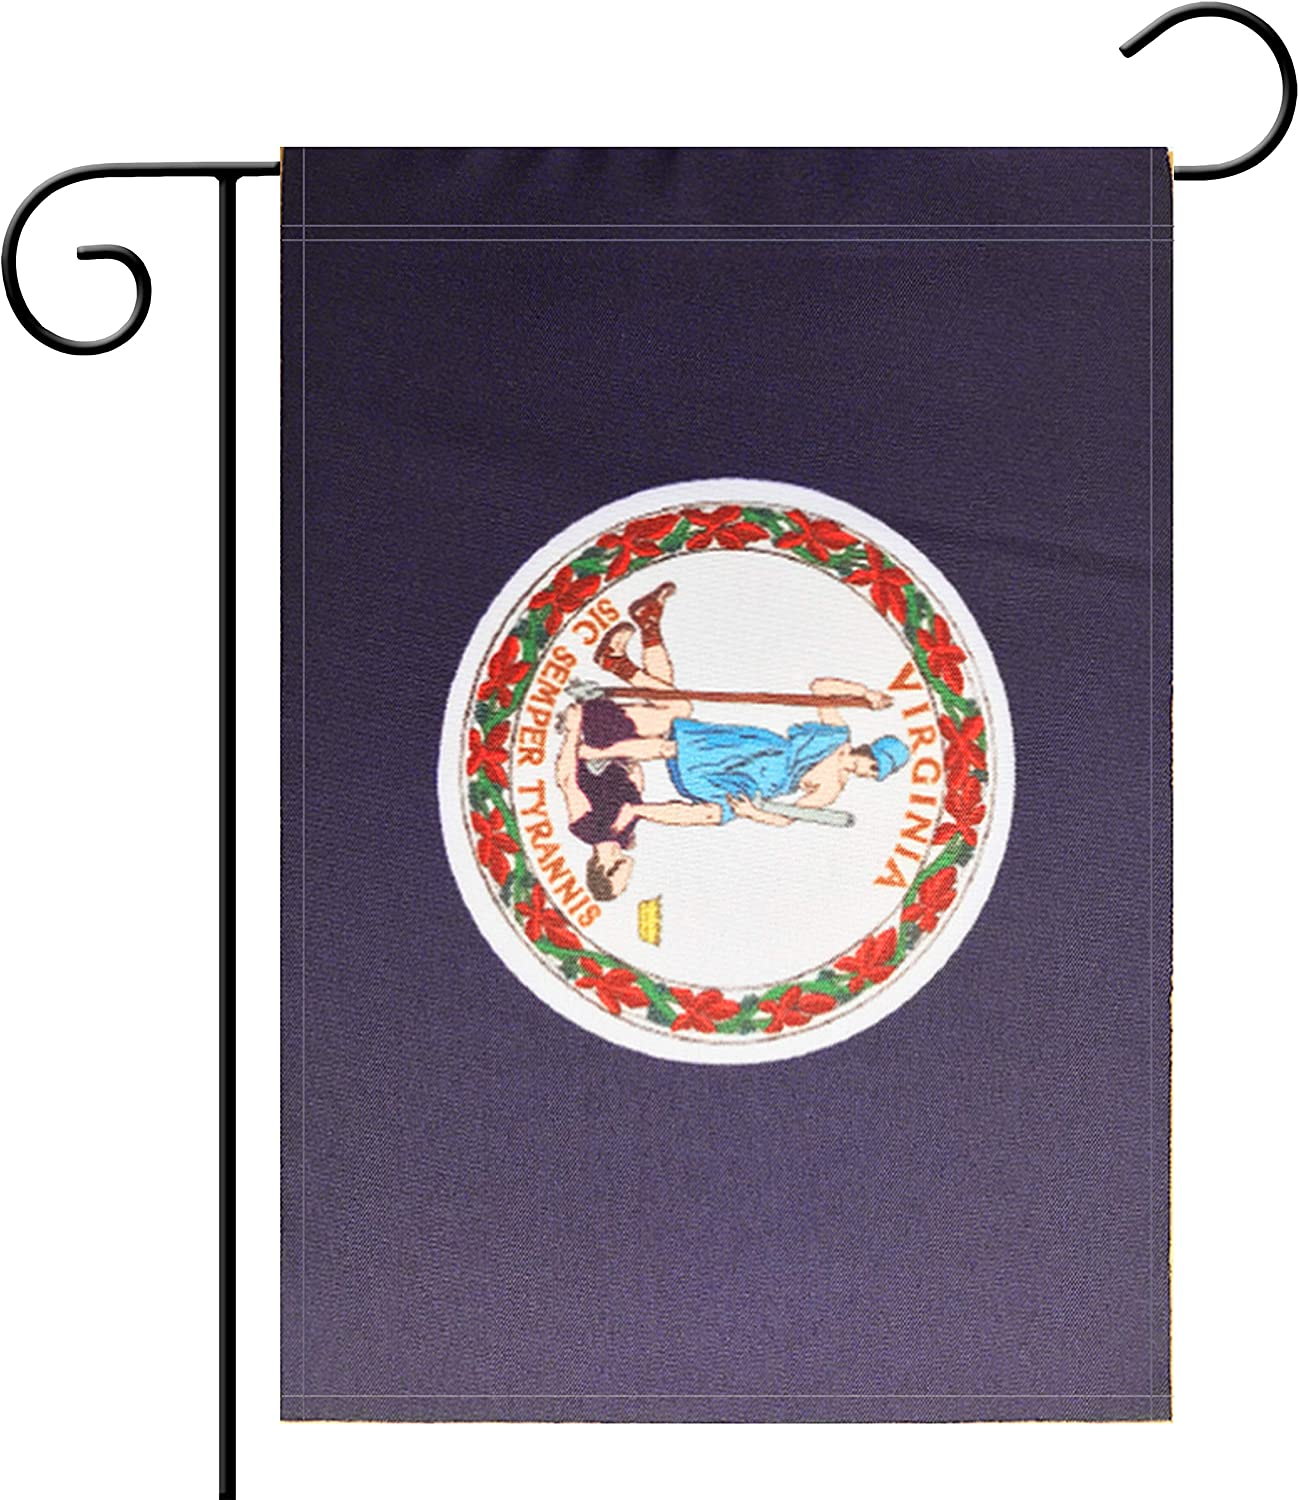 Flag Garden Virginia State Garden, Garden Decoration, Indoor and Outdoor, Celebration Parade, Virginia State Party Event Decorations,Double-Sided.